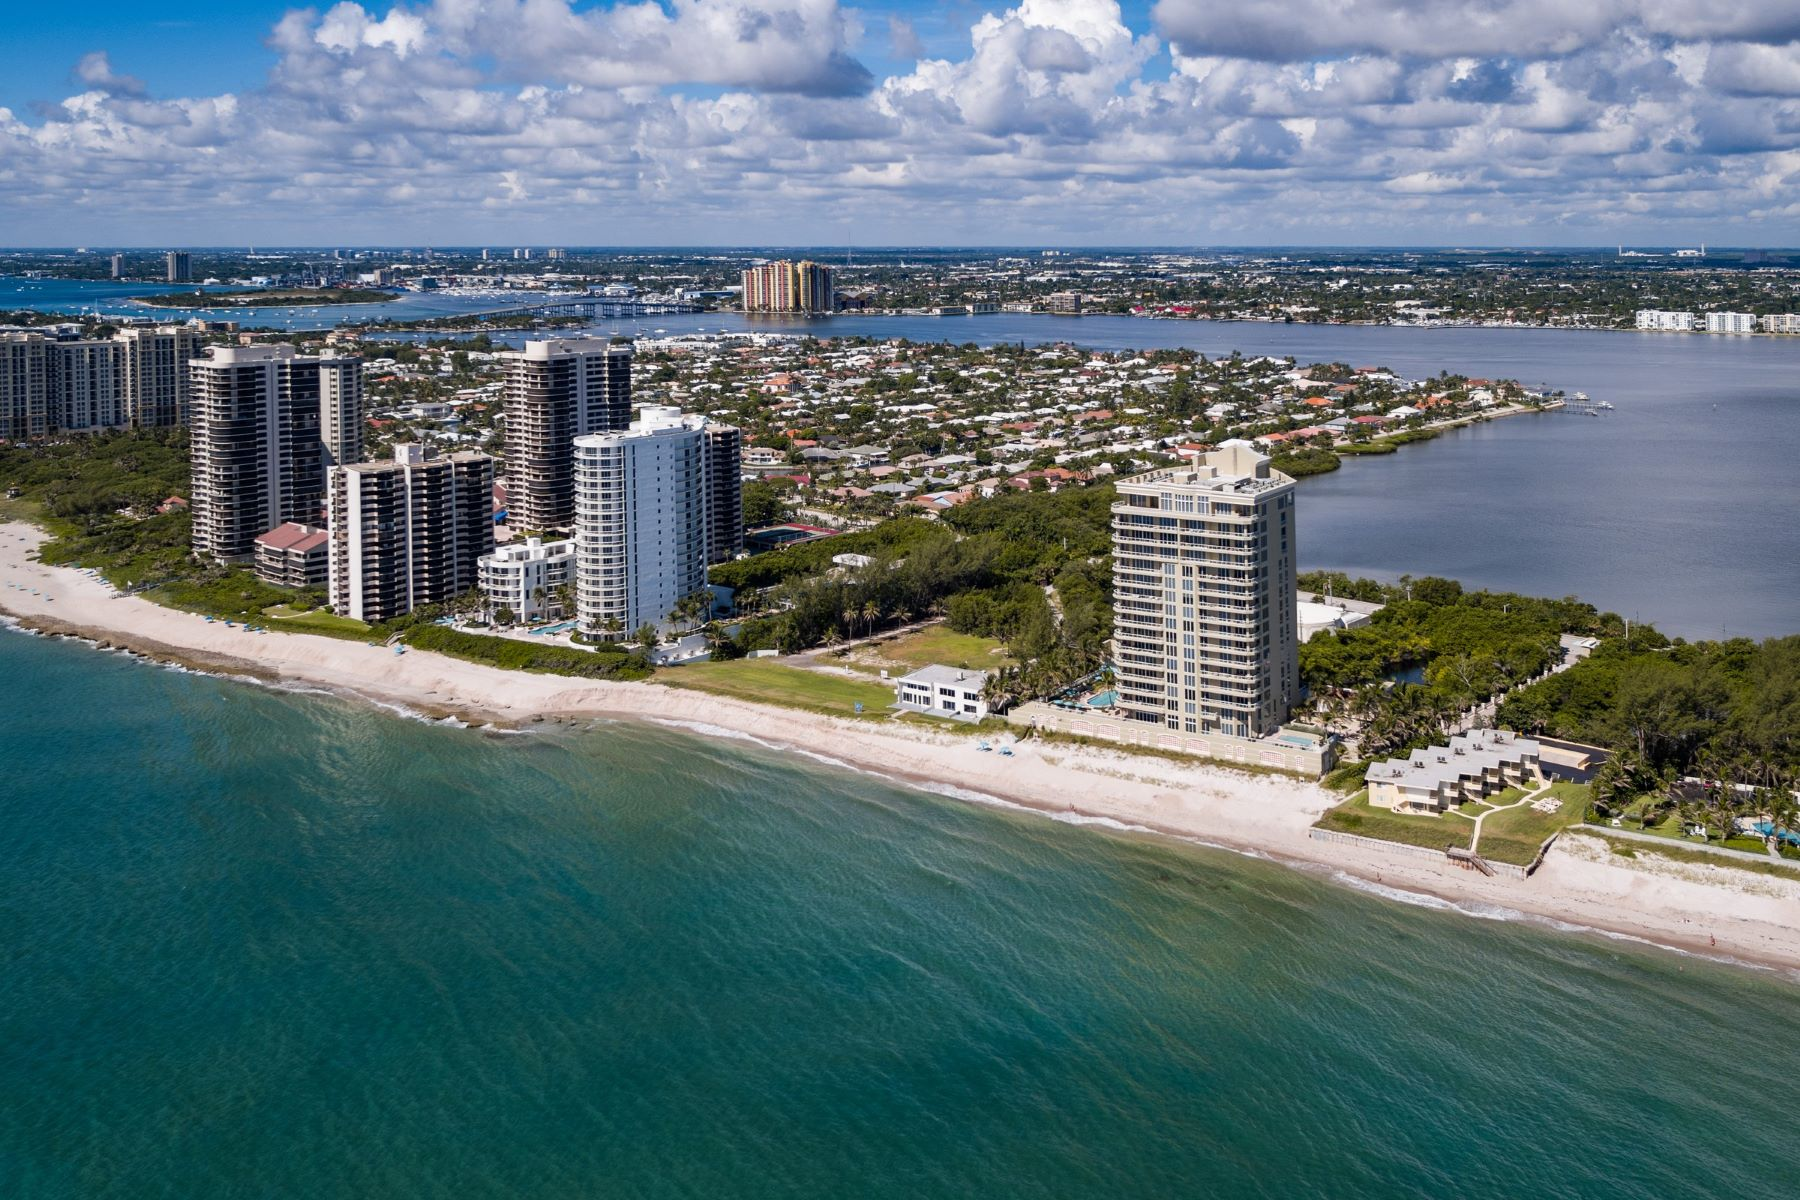 Condominium for Sale at Ocean's Edge at Singer Island 5050 North Ocean Drive, Unit 1501 Singer Island, Florida 33404 United States